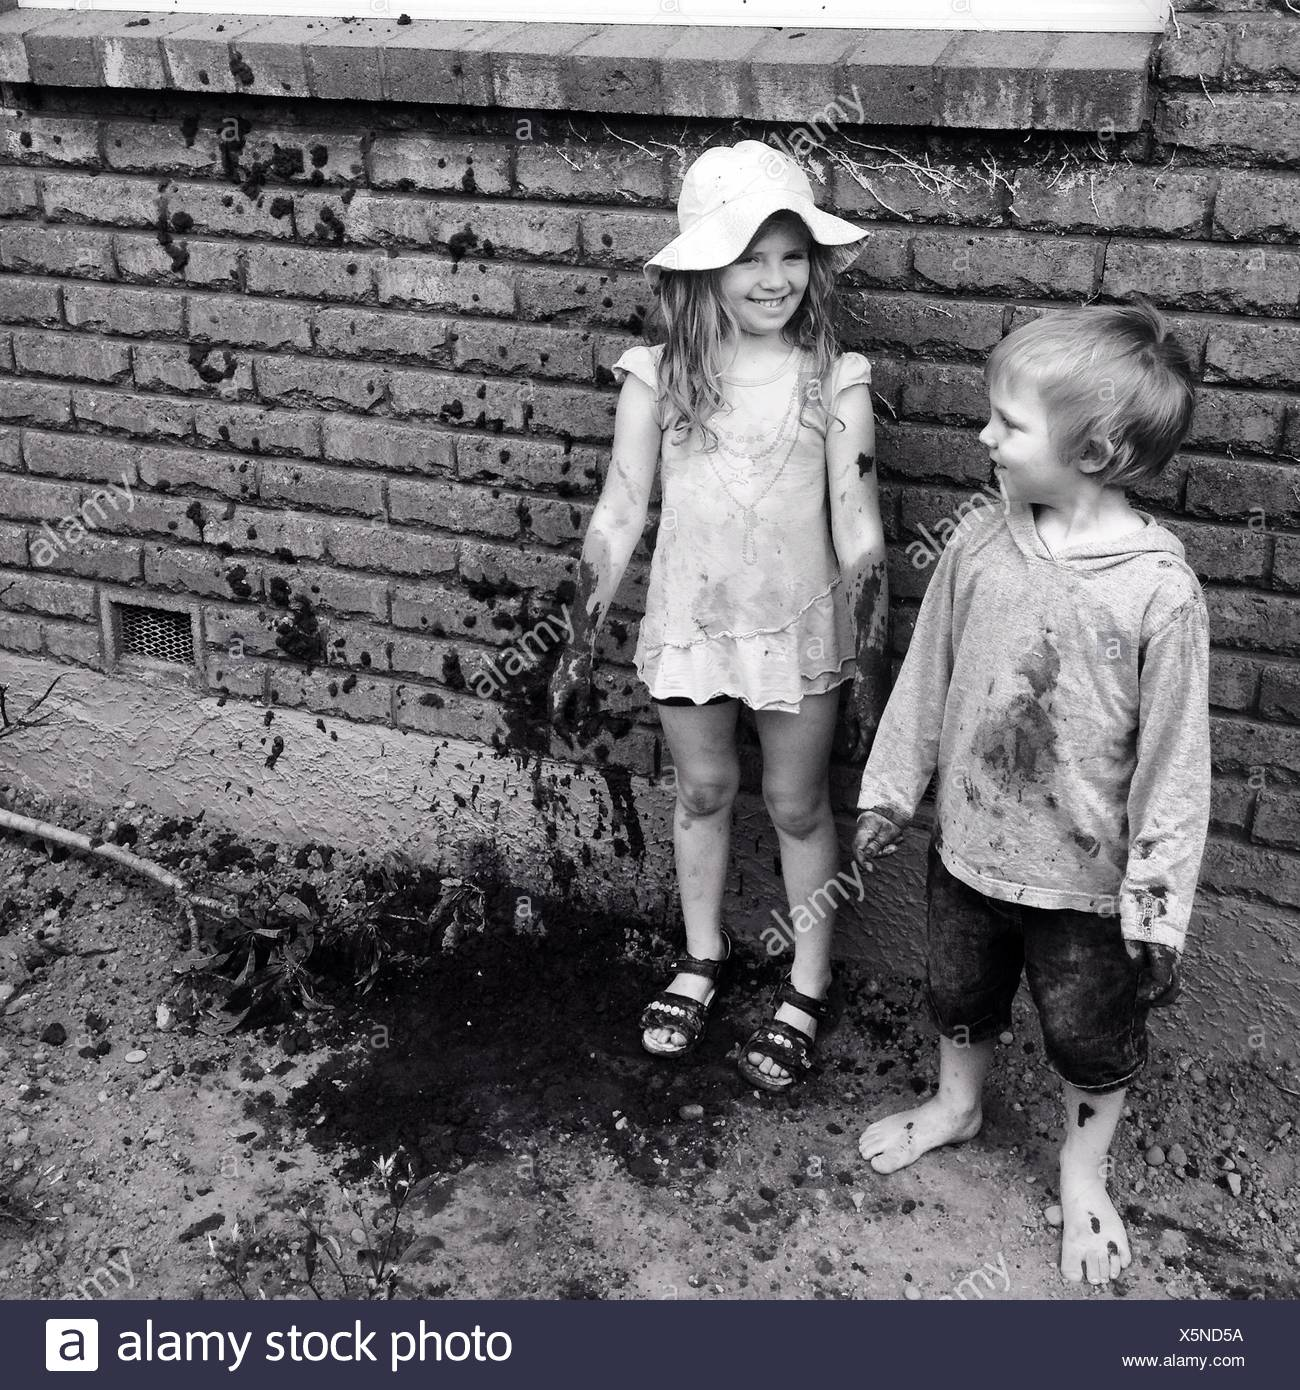 Boy And Girl Playing With Mud - Stock Image